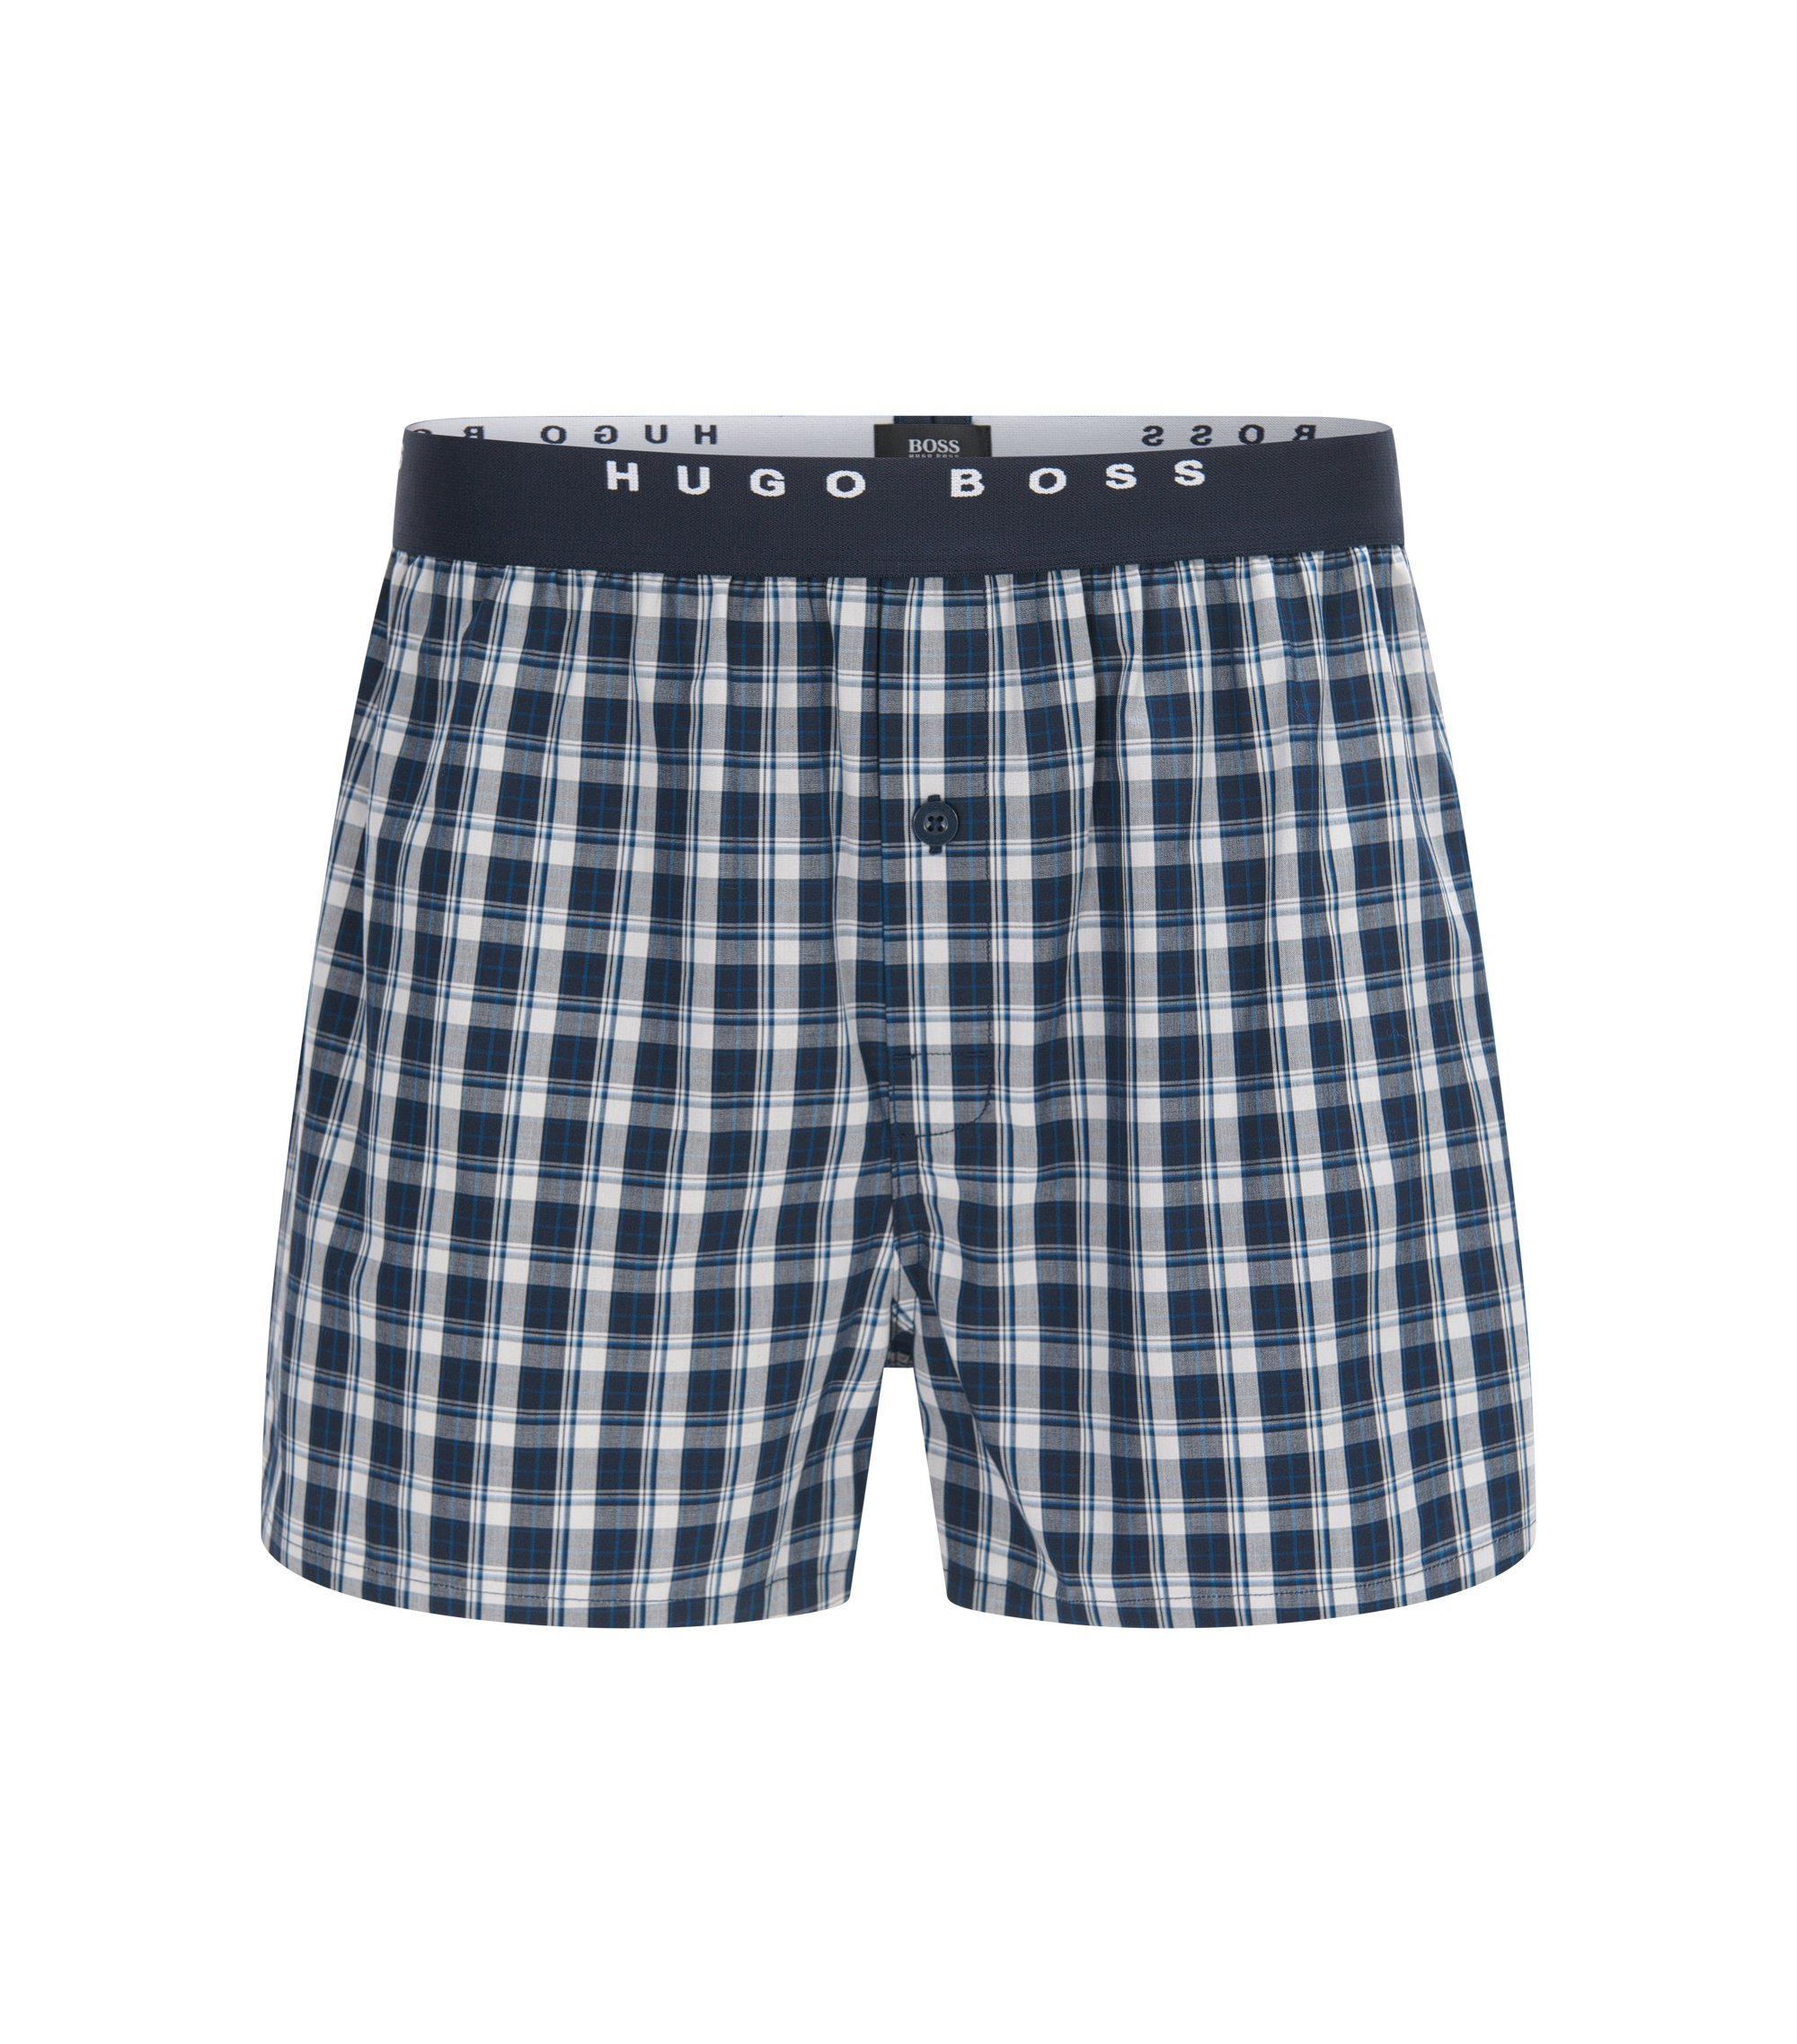 Two-pack of check cotton boxer shorts, Patterned